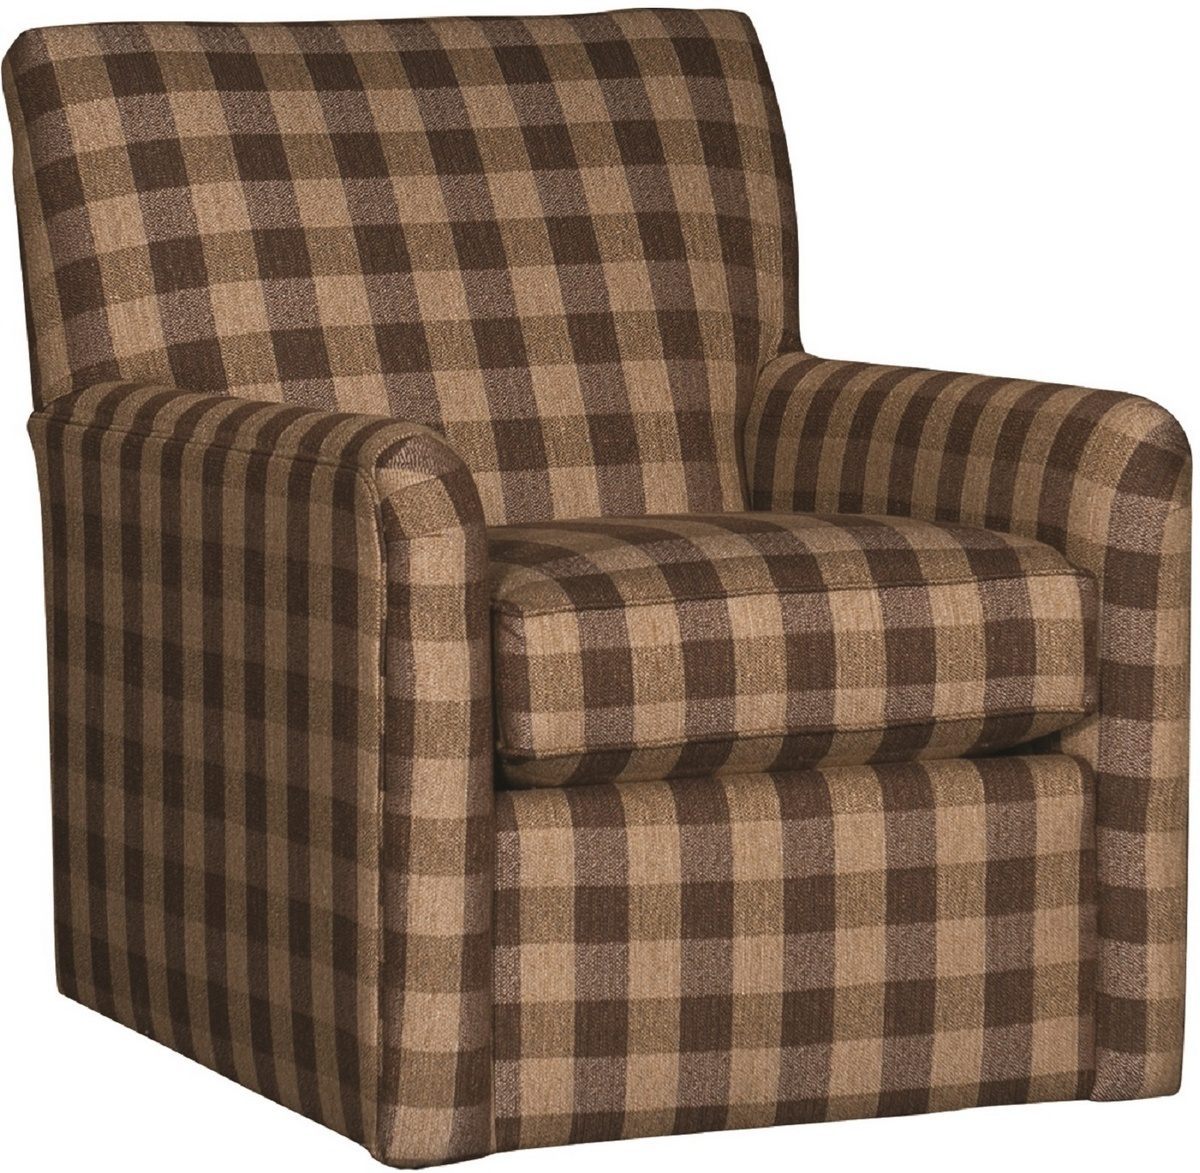 Chelsea Home Hadrian Swivel Glider Chair Buffalo Check Brown